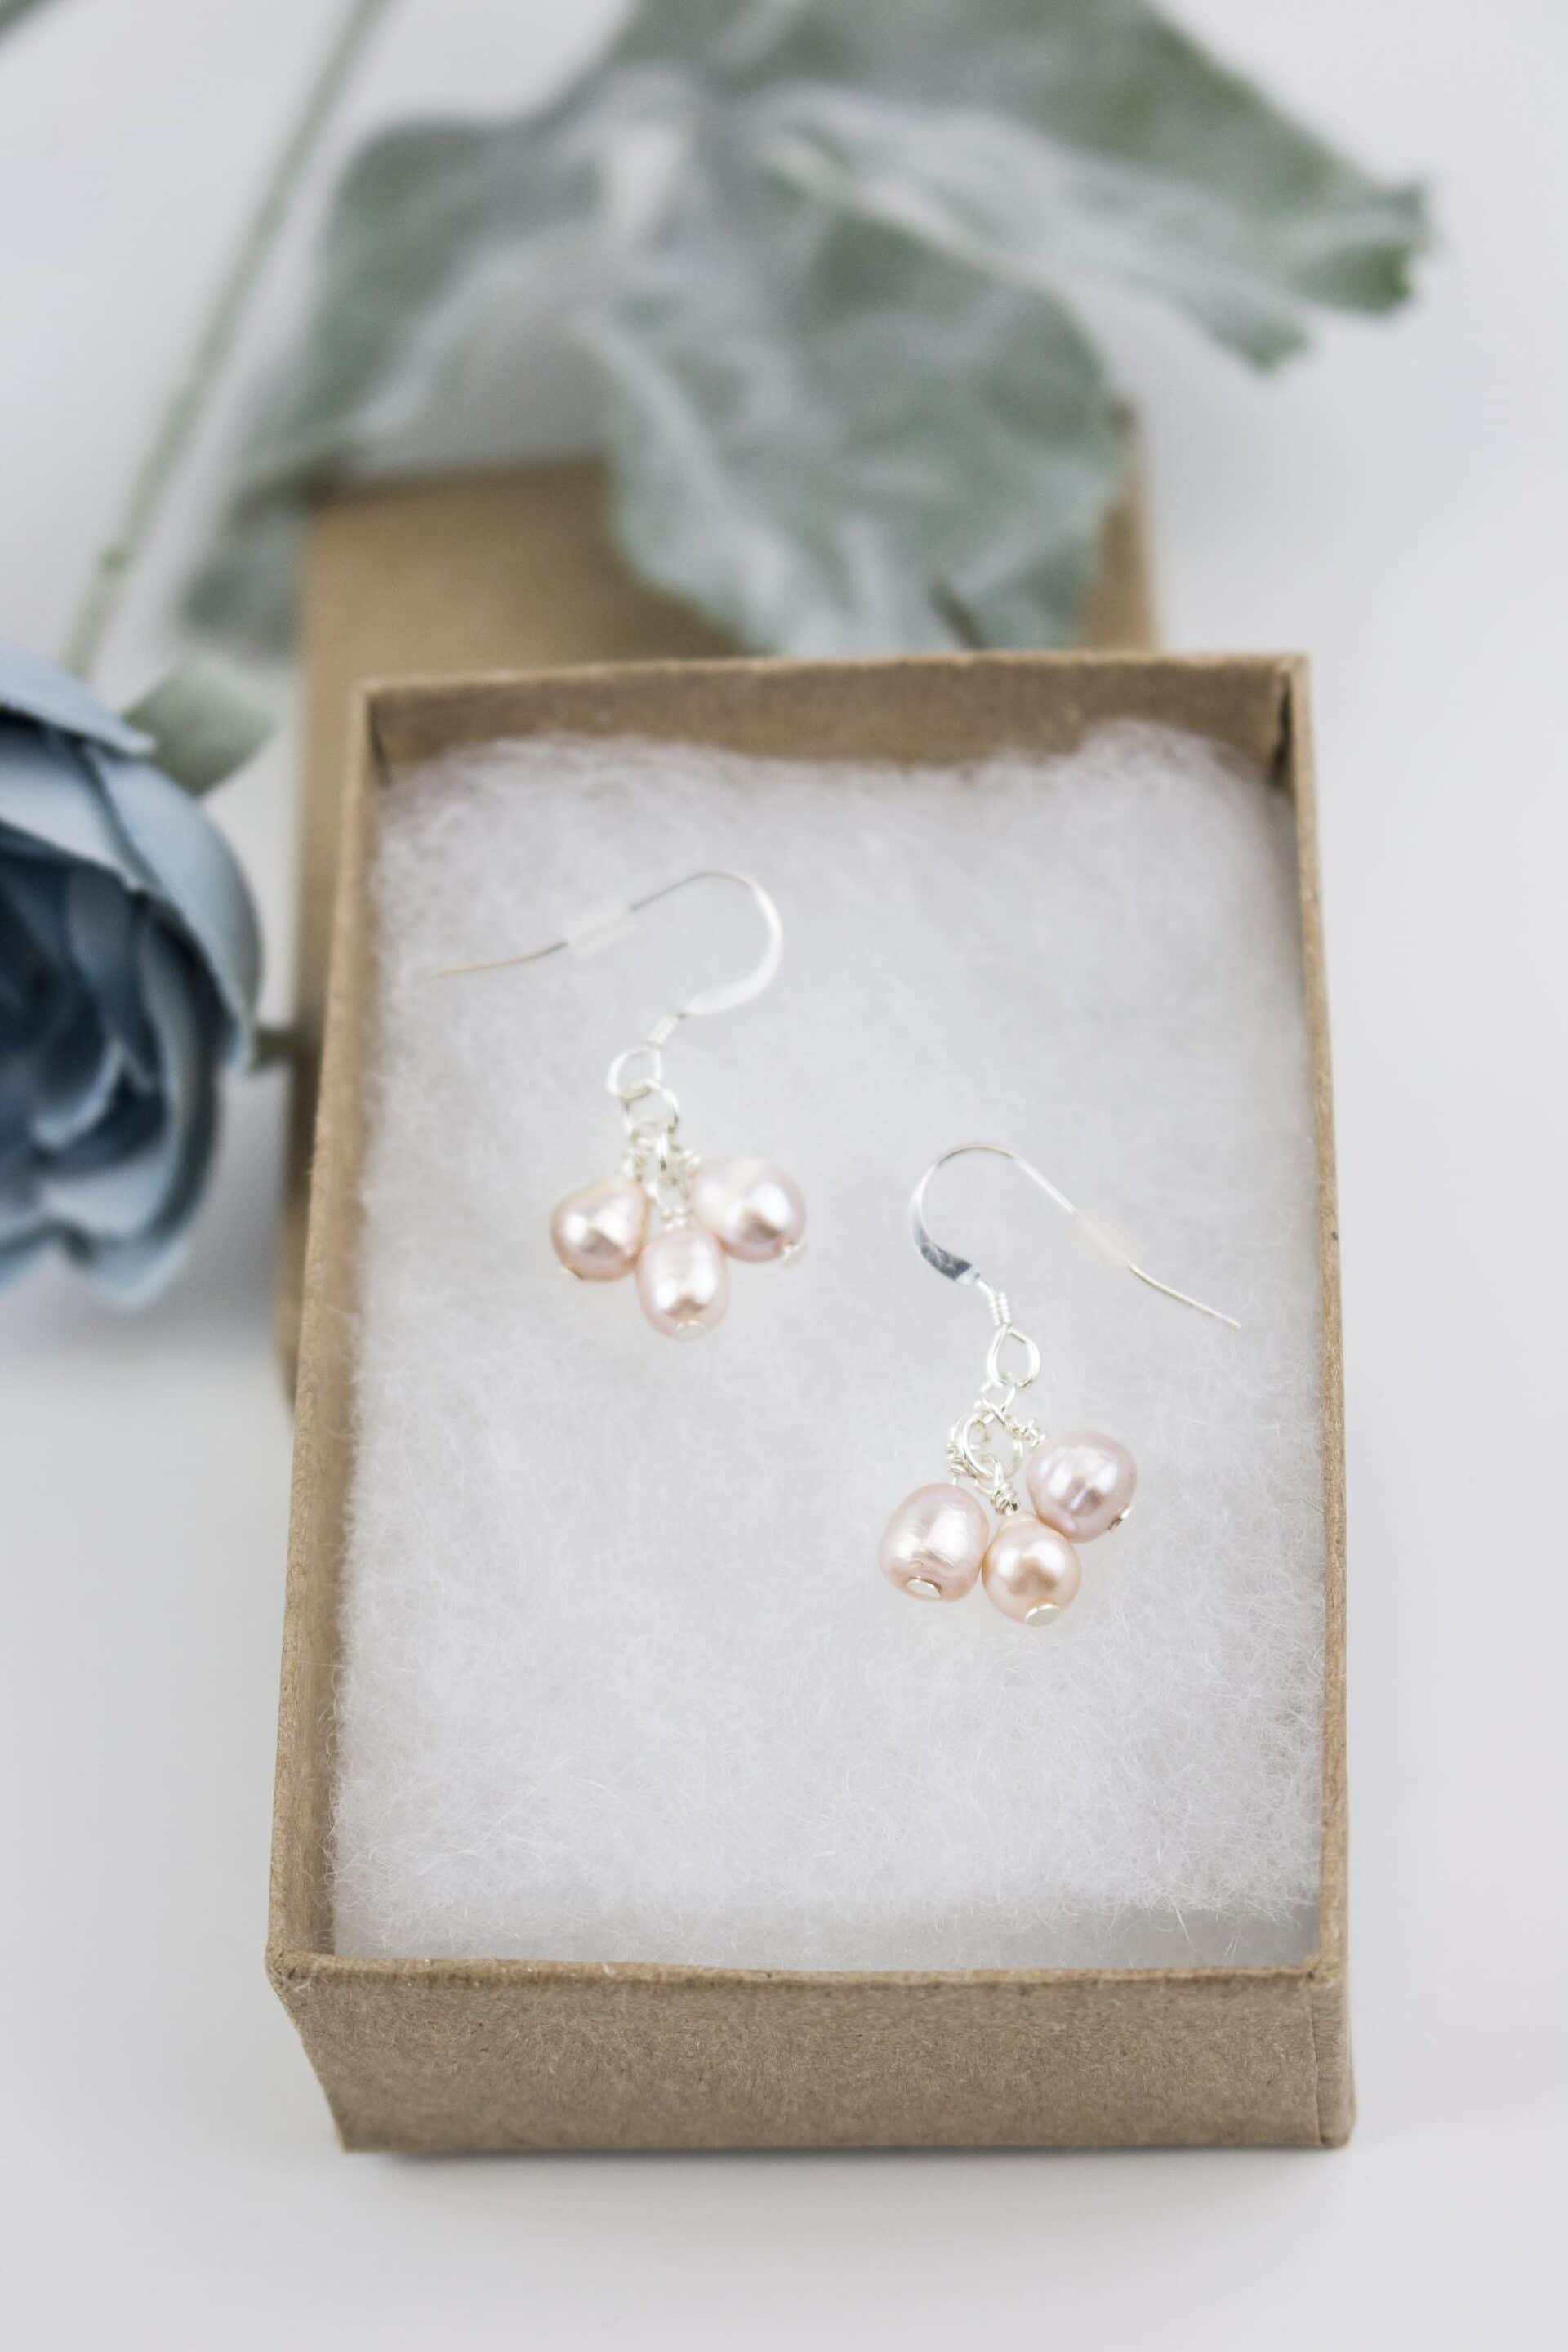 Chari Laree Photography Earrings In A Box With A Blue Flower